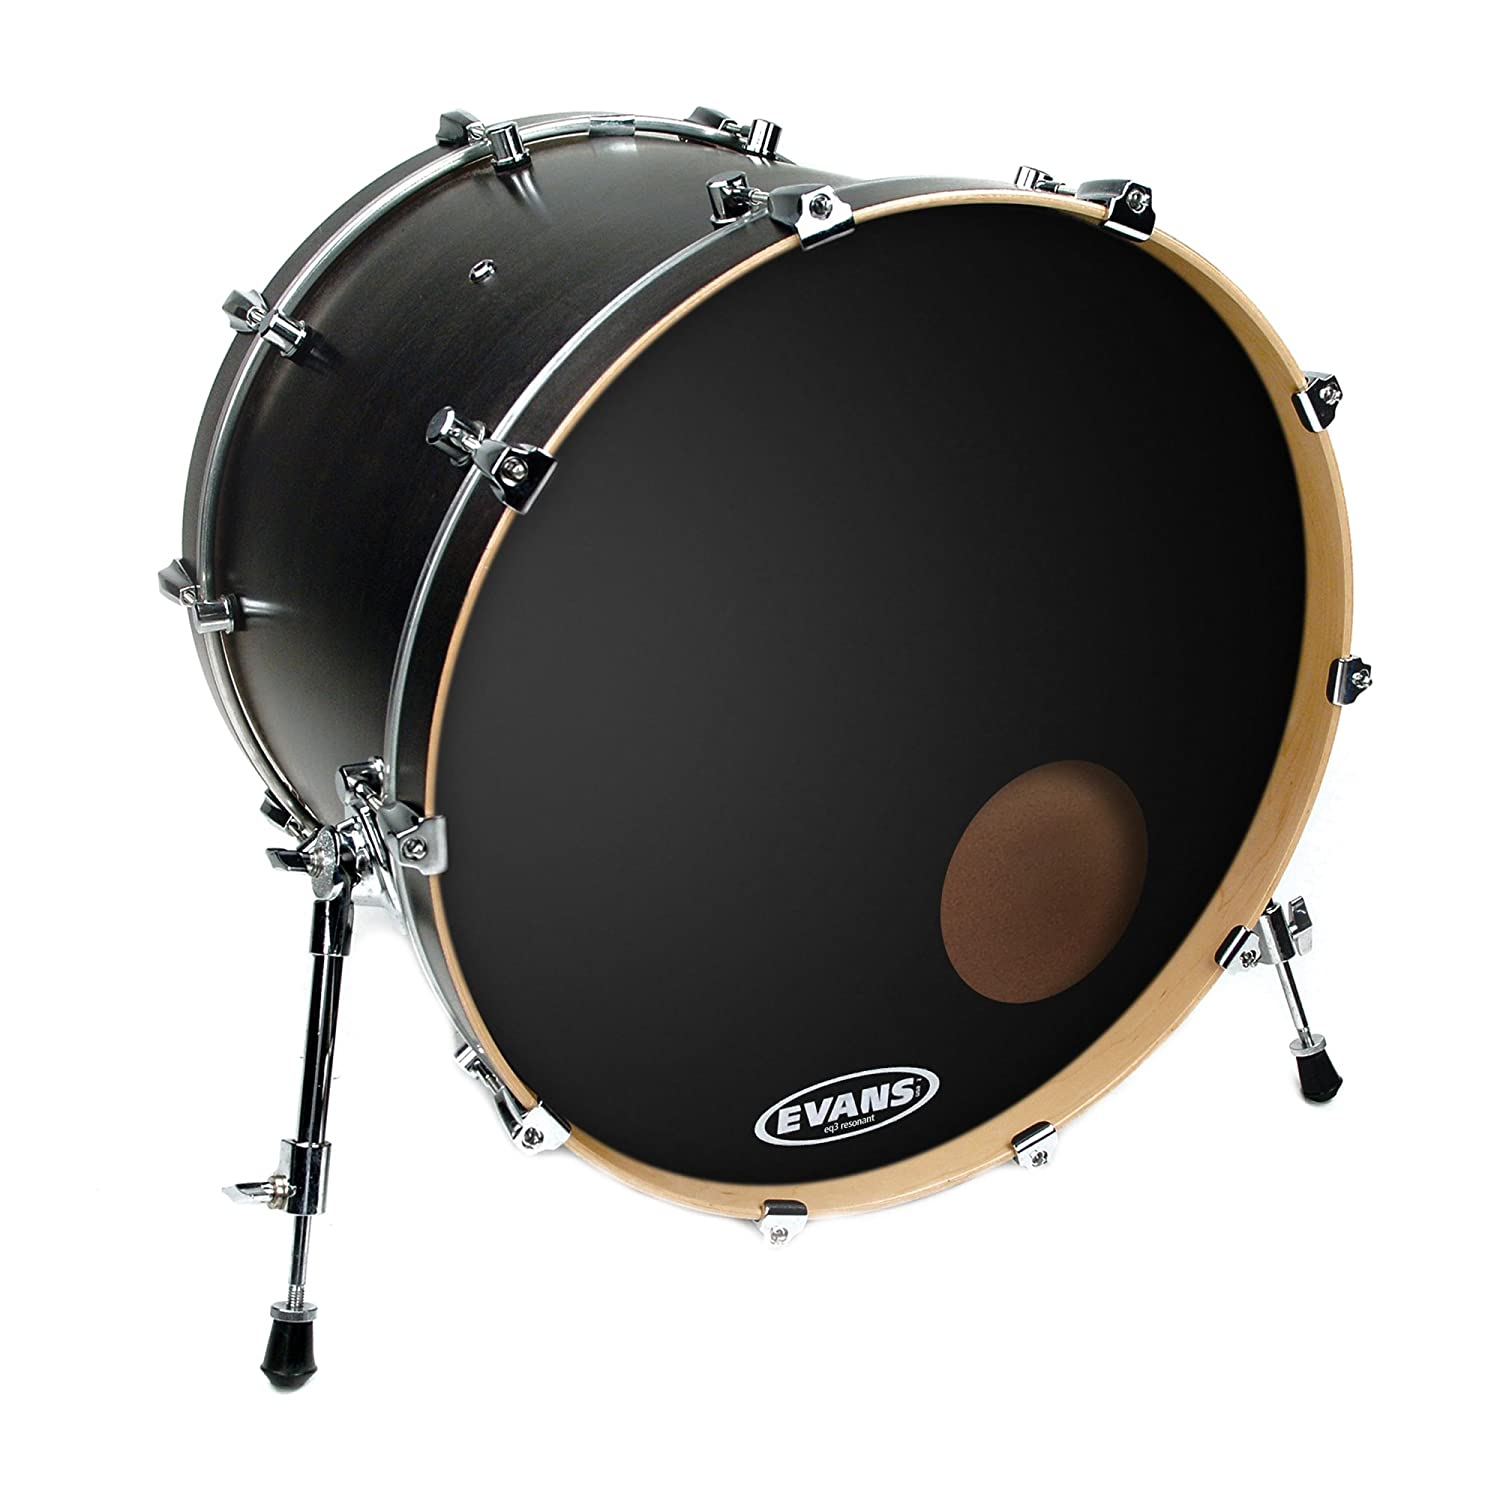 Evans EQ3 Resonant Black Bass Drum Head, 18 Inch,BD18RB Evans Heads